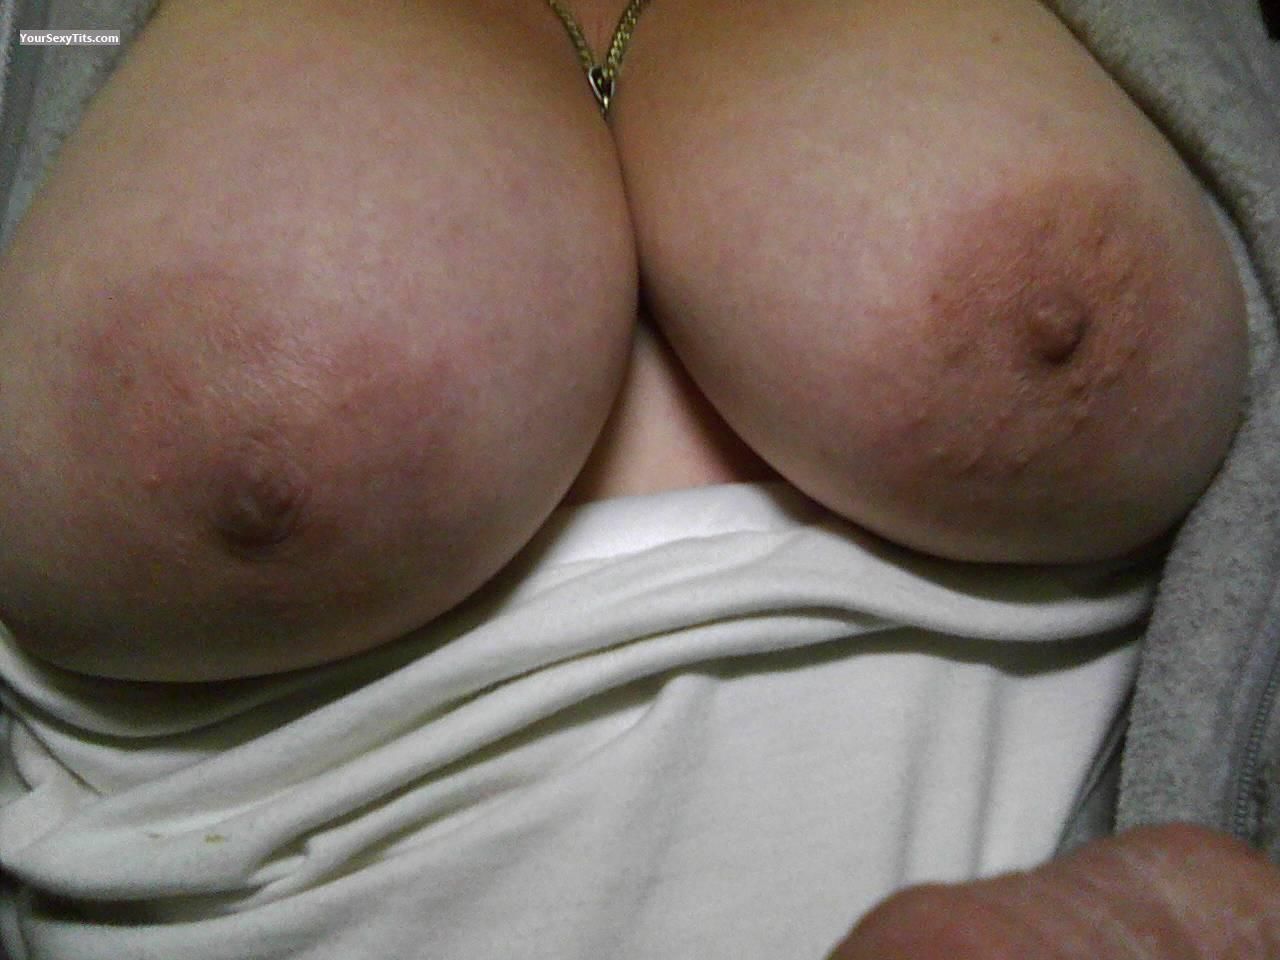 Tit Flash: My Very Big Tits (Selfie) - SuzyQ from United States